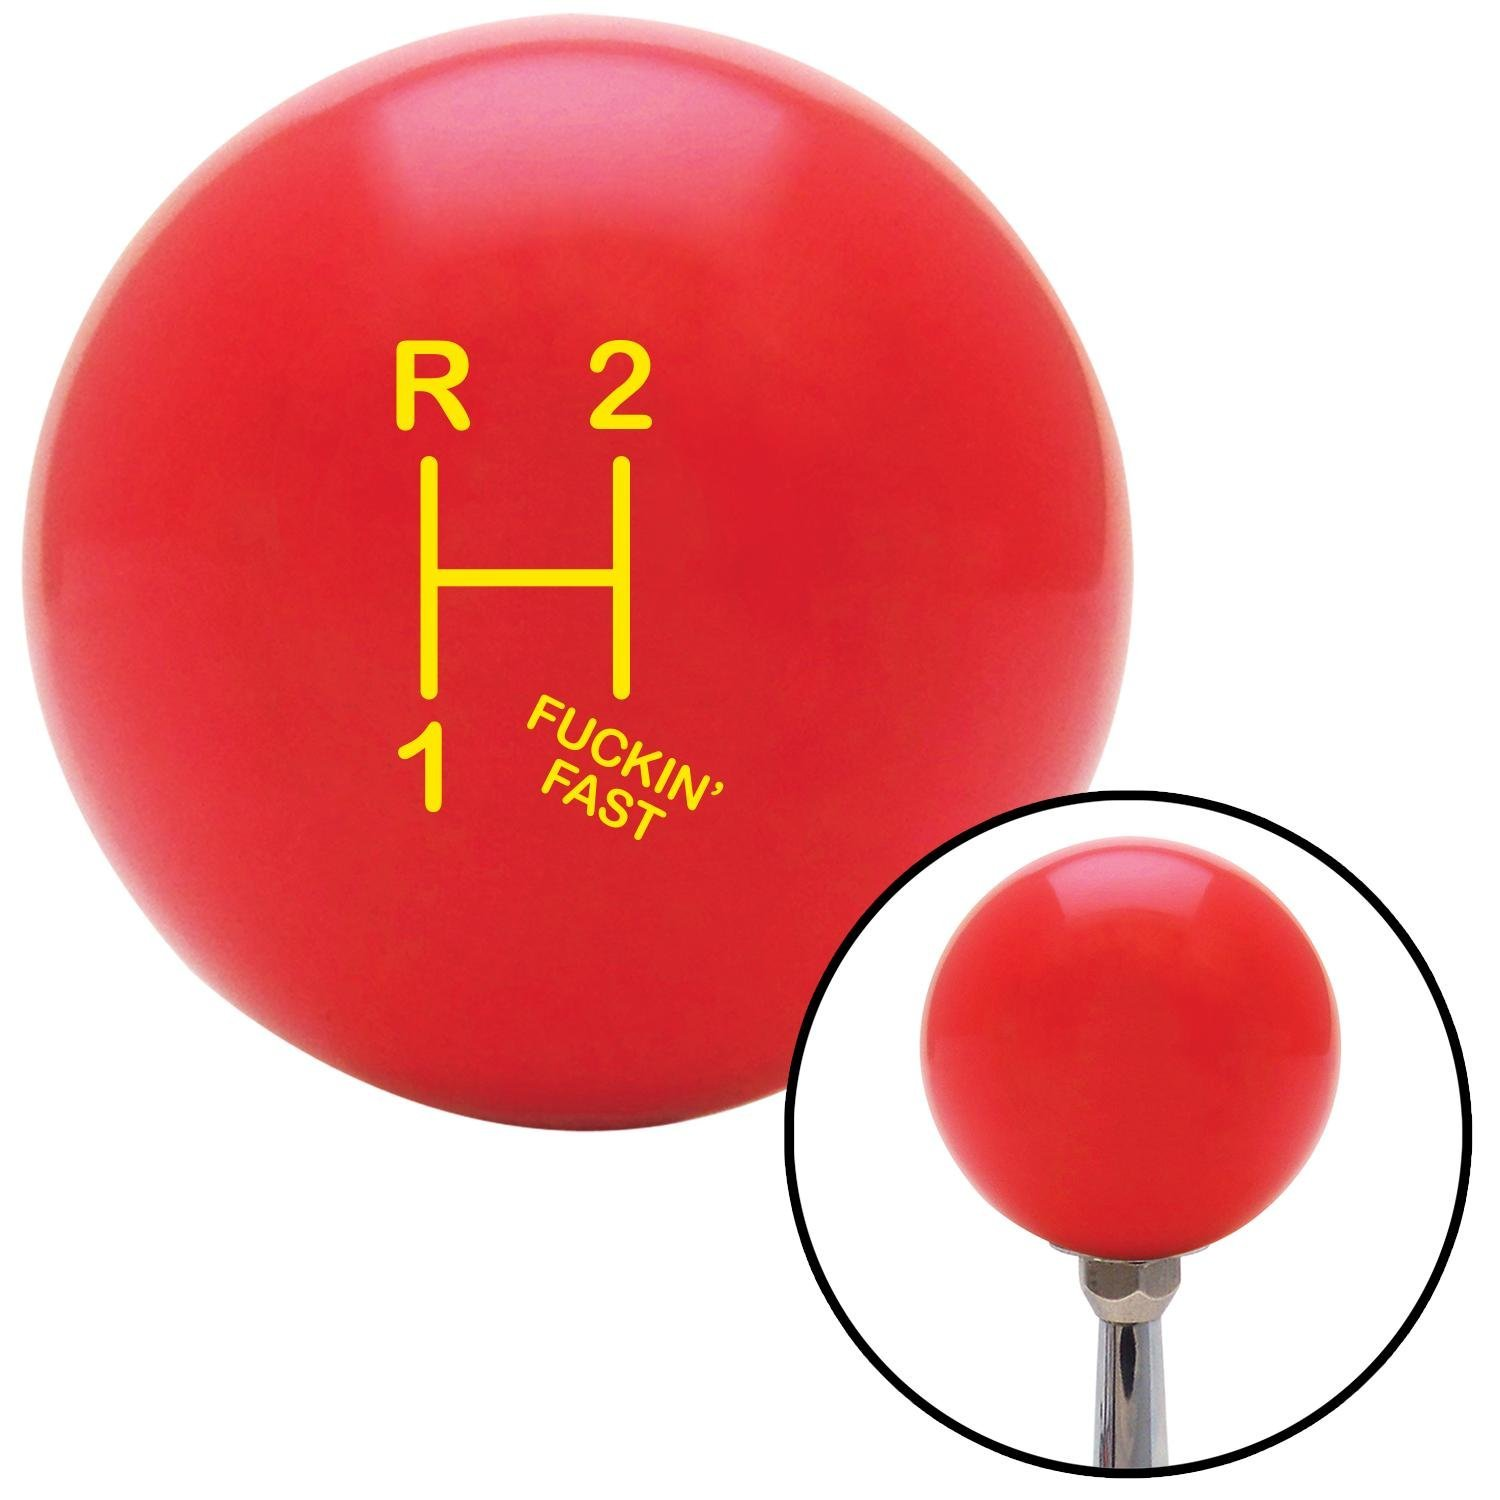 American Shifter 100544 Red Shift Knob with M16 x 1.5 Insert Yellow Shift Pattern Fcking Fast Style 11n